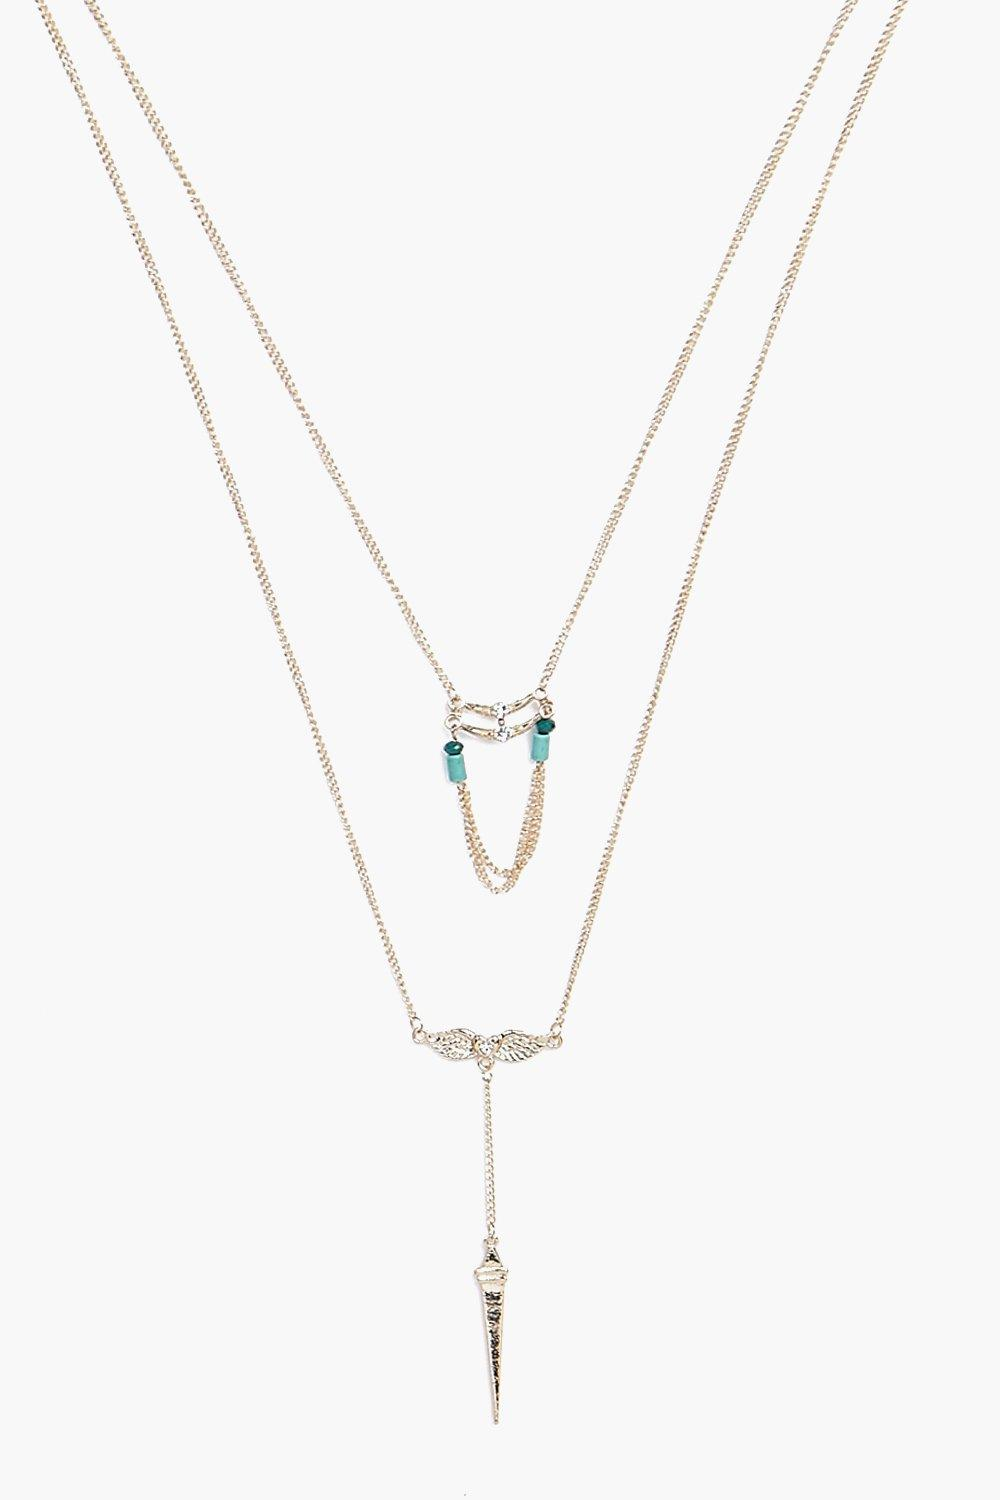 Gracie Tassel Pendant Layered Necklace